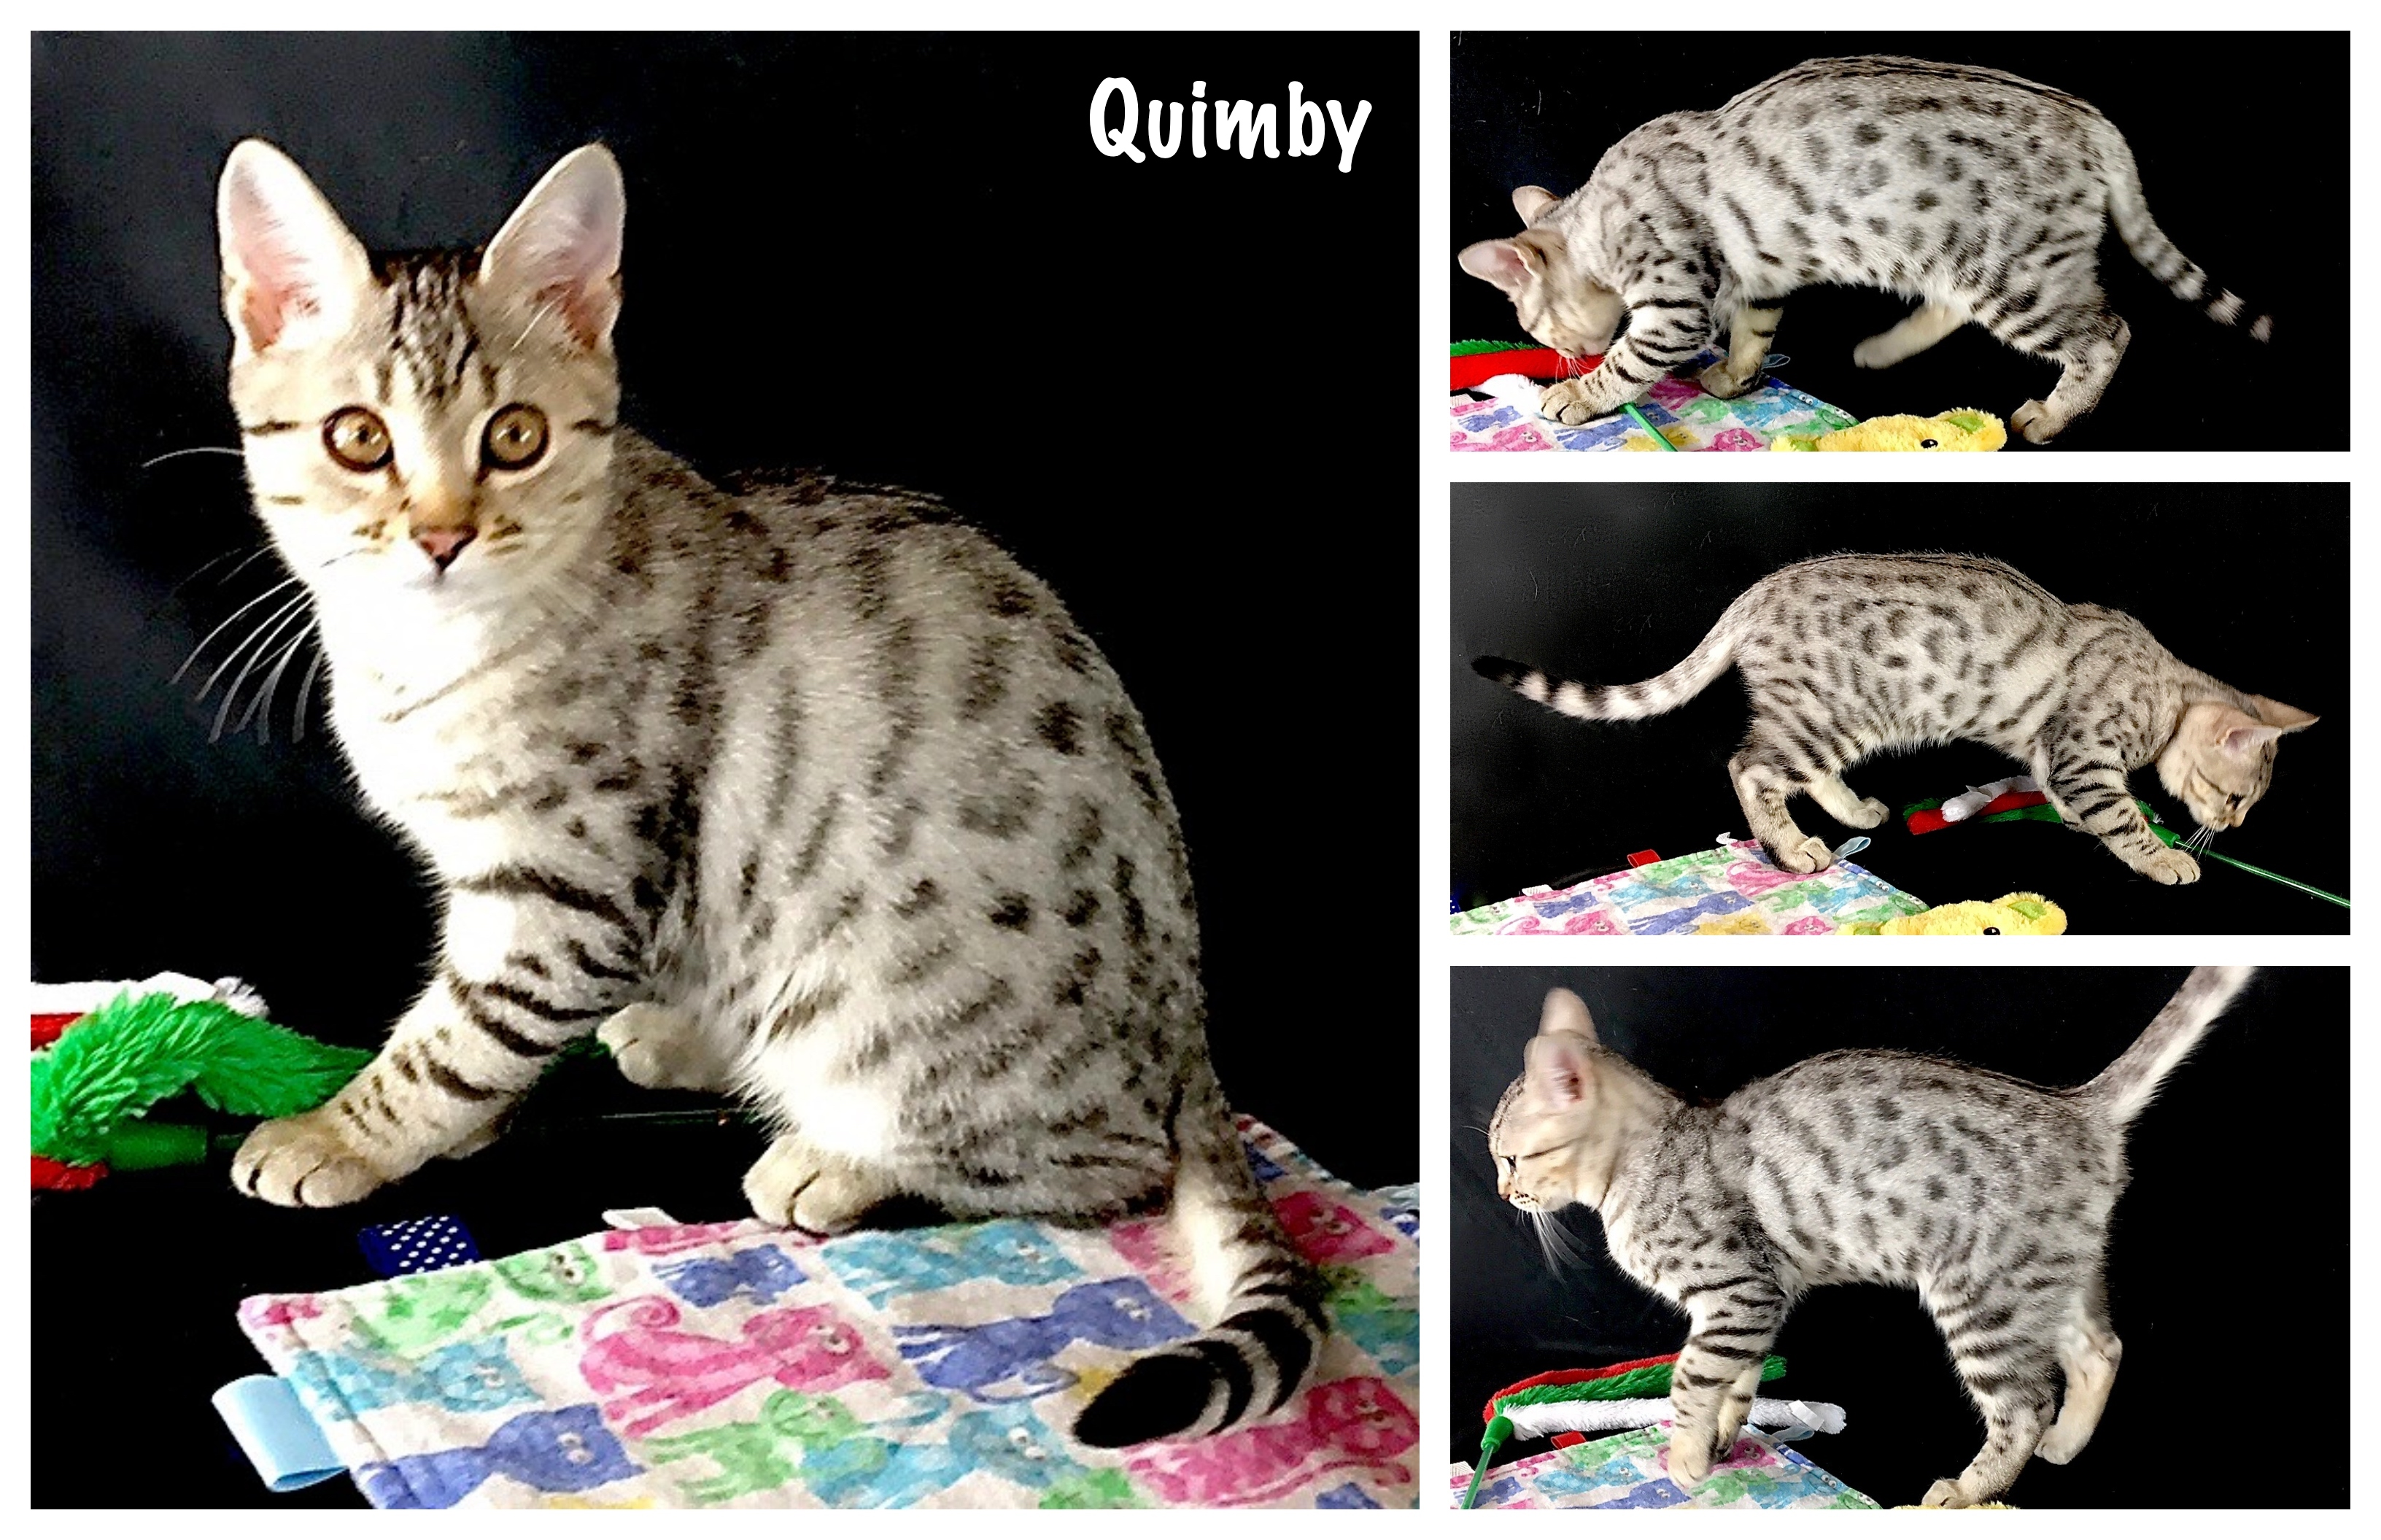 Quimby 17 weeks